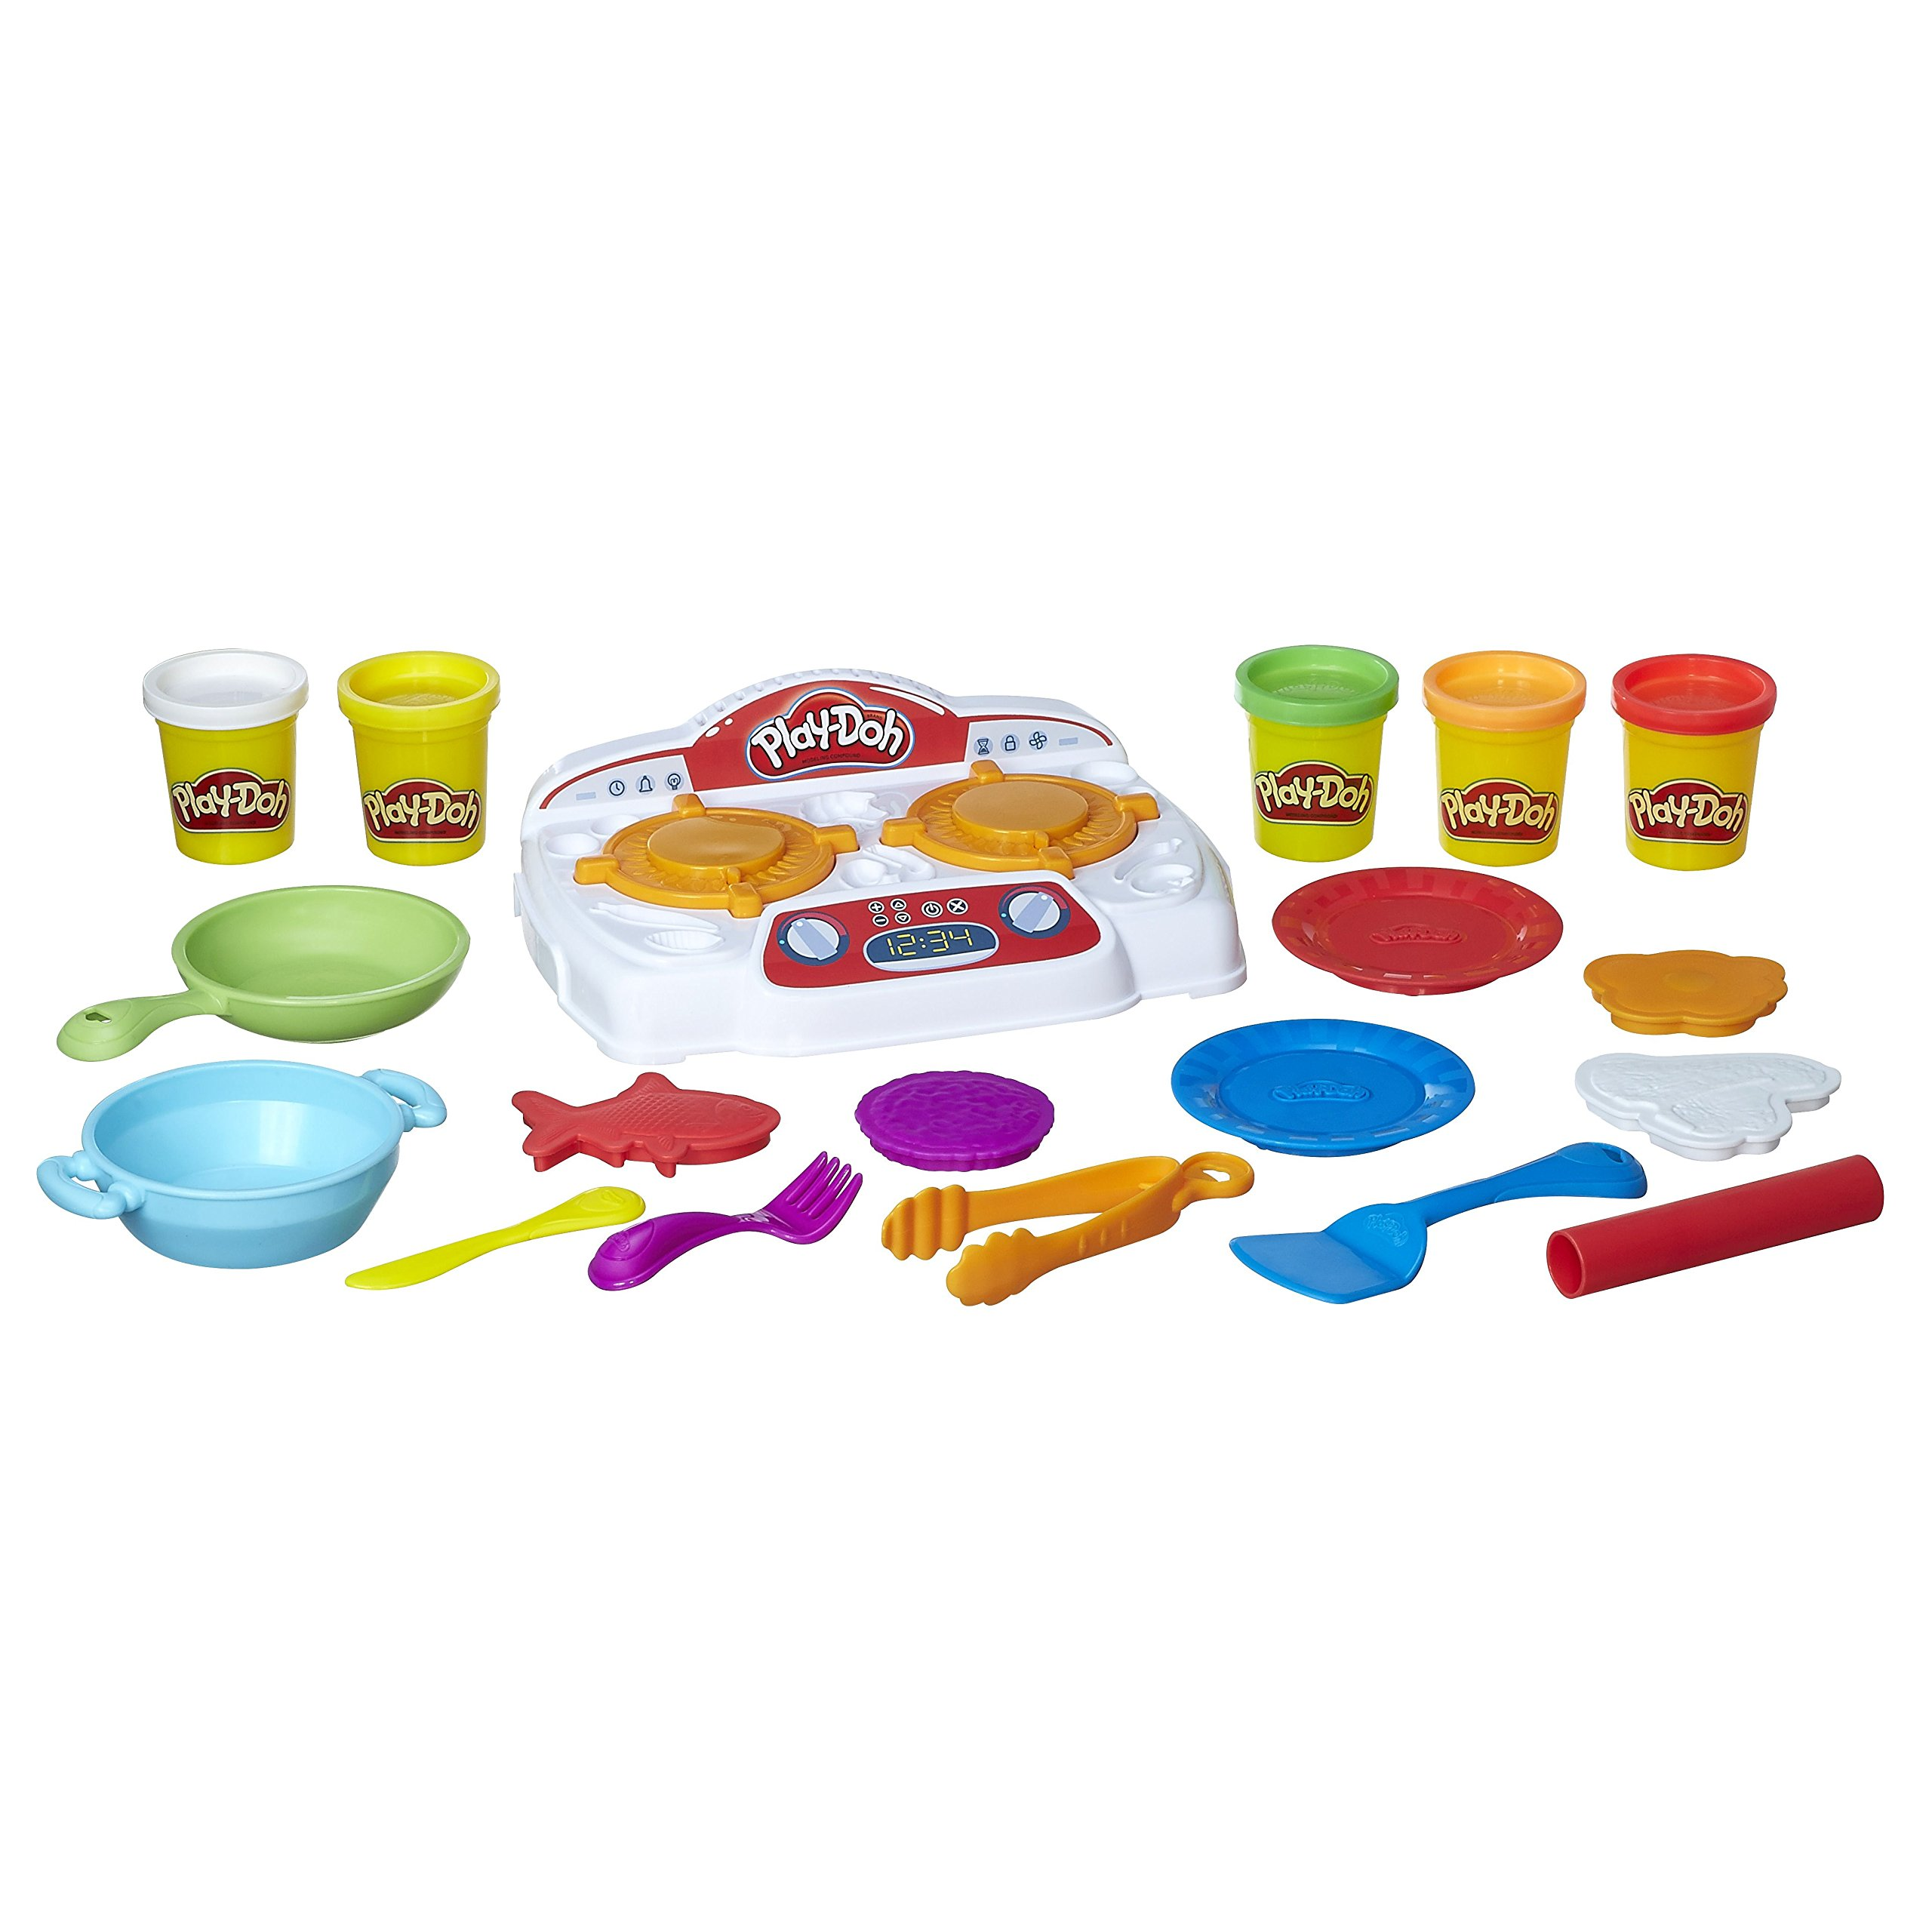 Play-Doh - B9014 - Kitchen Creations Sizzling Stovetop by Play-Doh (Image #2)